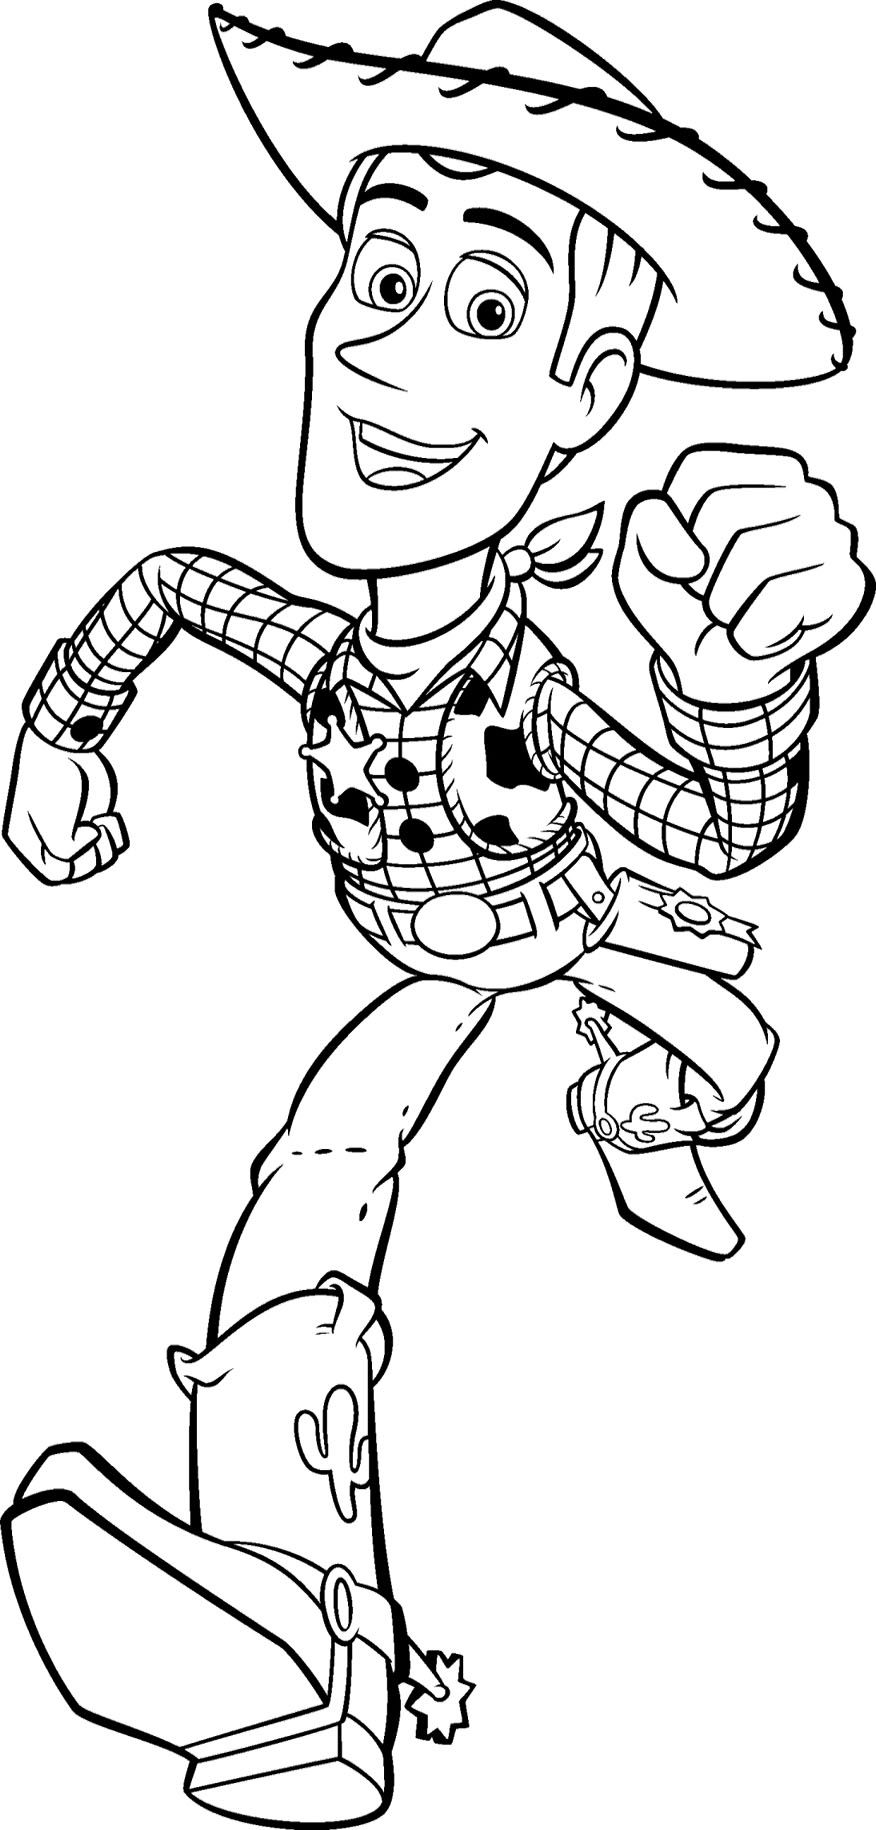 toy story coloring pages lotso 30 free printable toy story coloring pages coloring toy lotso pages story